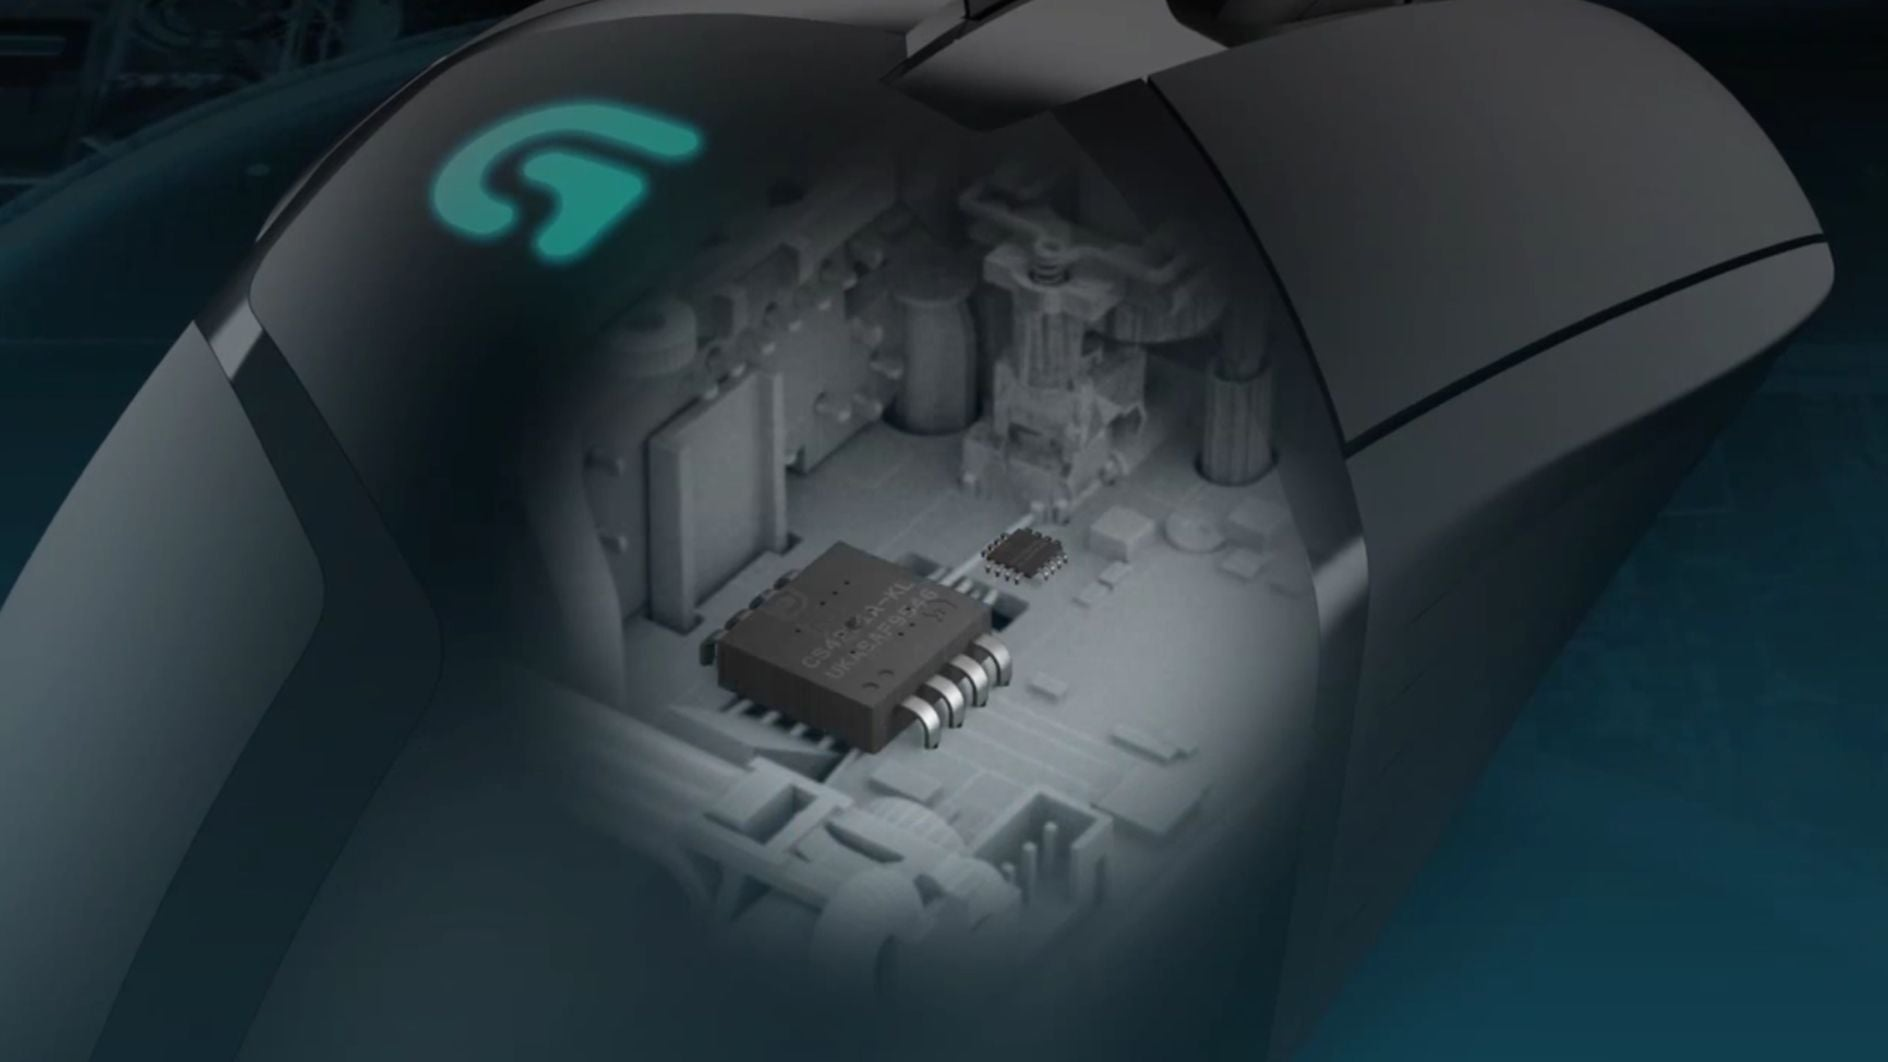 Logitech G402 Hyperion Fury FPS Gaming Mouse combines an optical sensor featuring Logitech Delta Zero™ technology with our exclusive Fusion Engine™ hybrid sensor to enable tracking speeds in excess of 500 IPS.